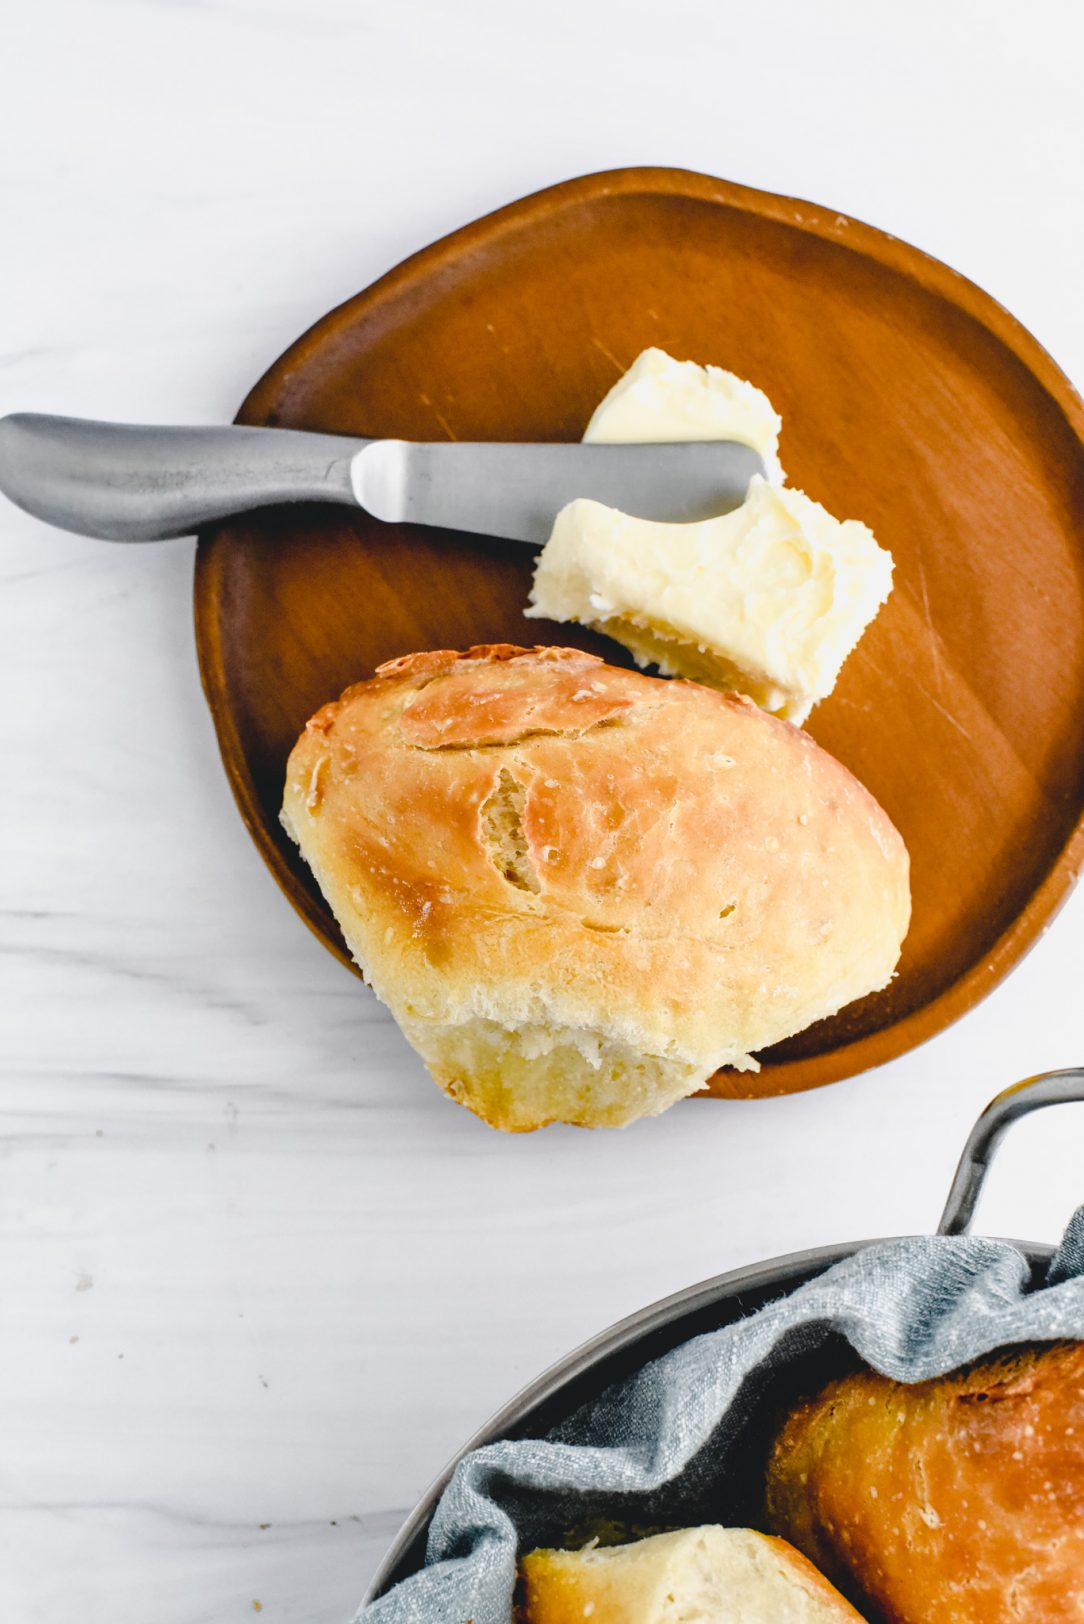 baked roll on plate with butter and knife